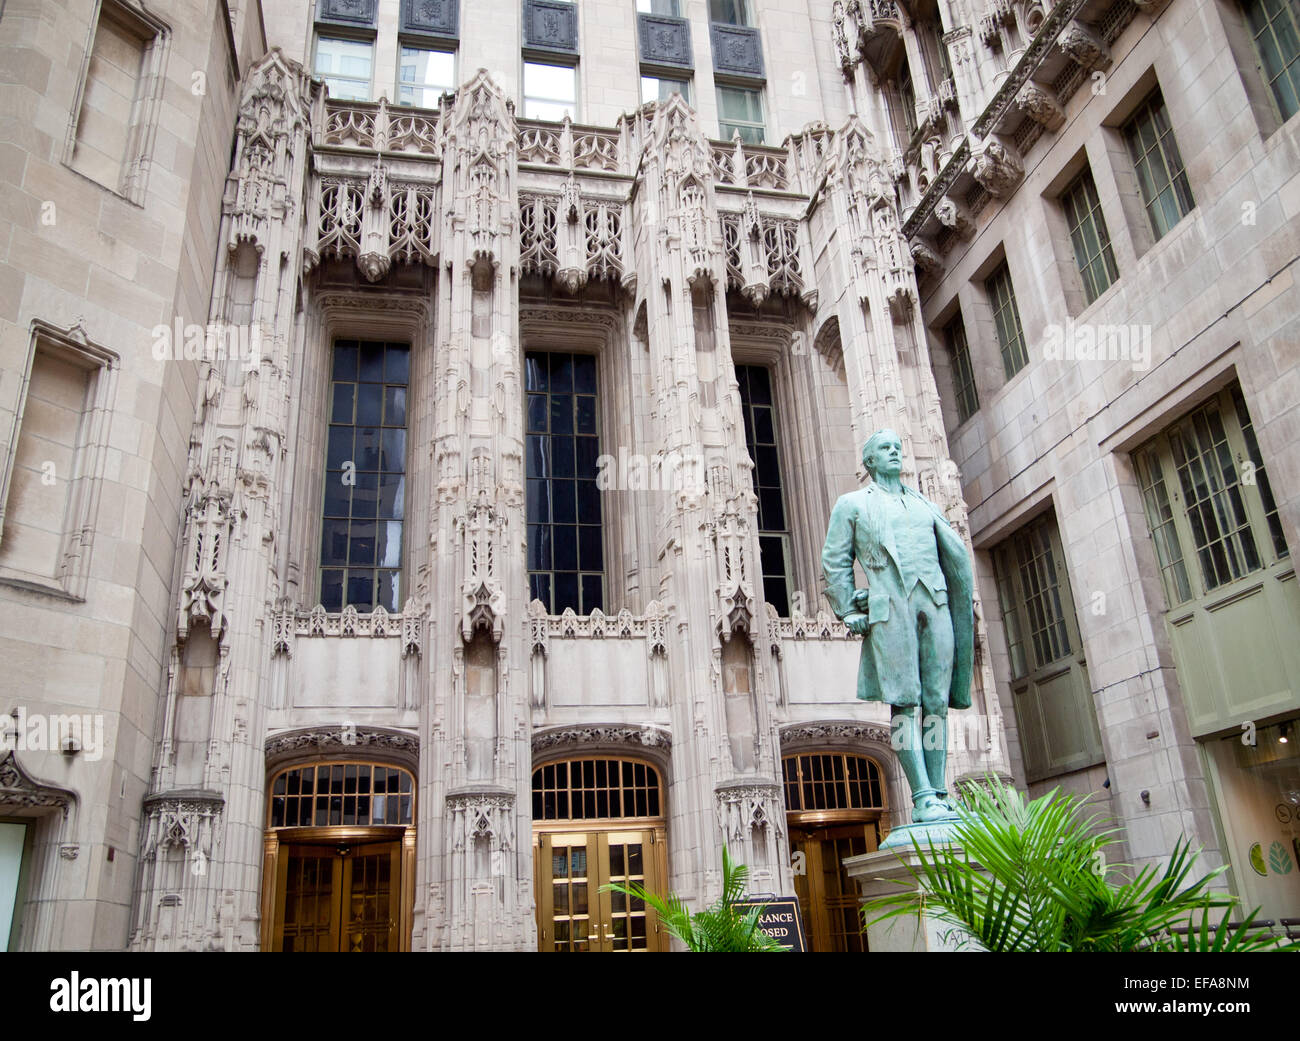 A view of a statue of Nathan Hale (by Bela Lyon Pratt) in front of the entrance of the Chicago Tribune Tower. - Stock Image